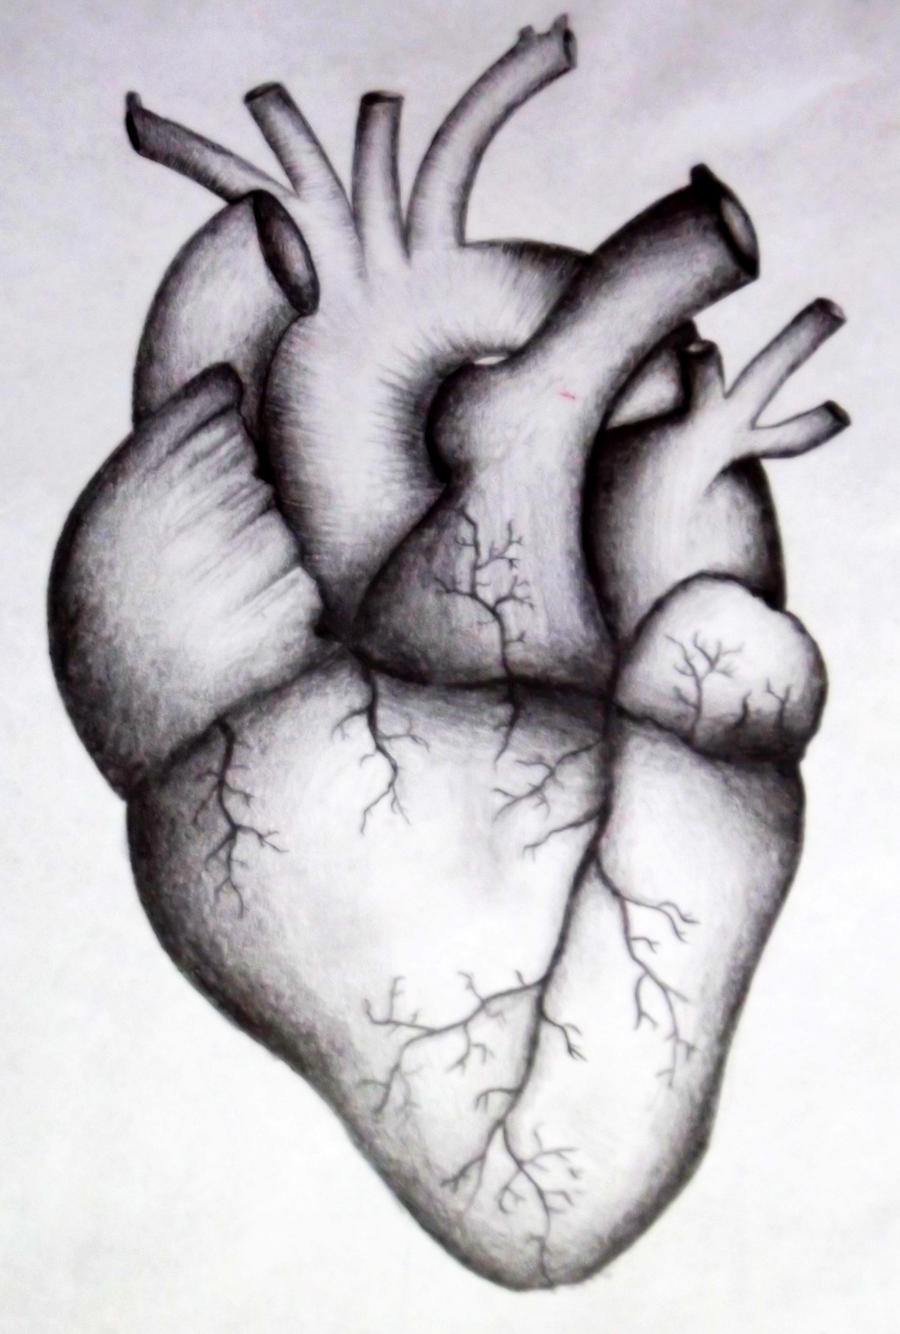 real human heart drawing, Muscles